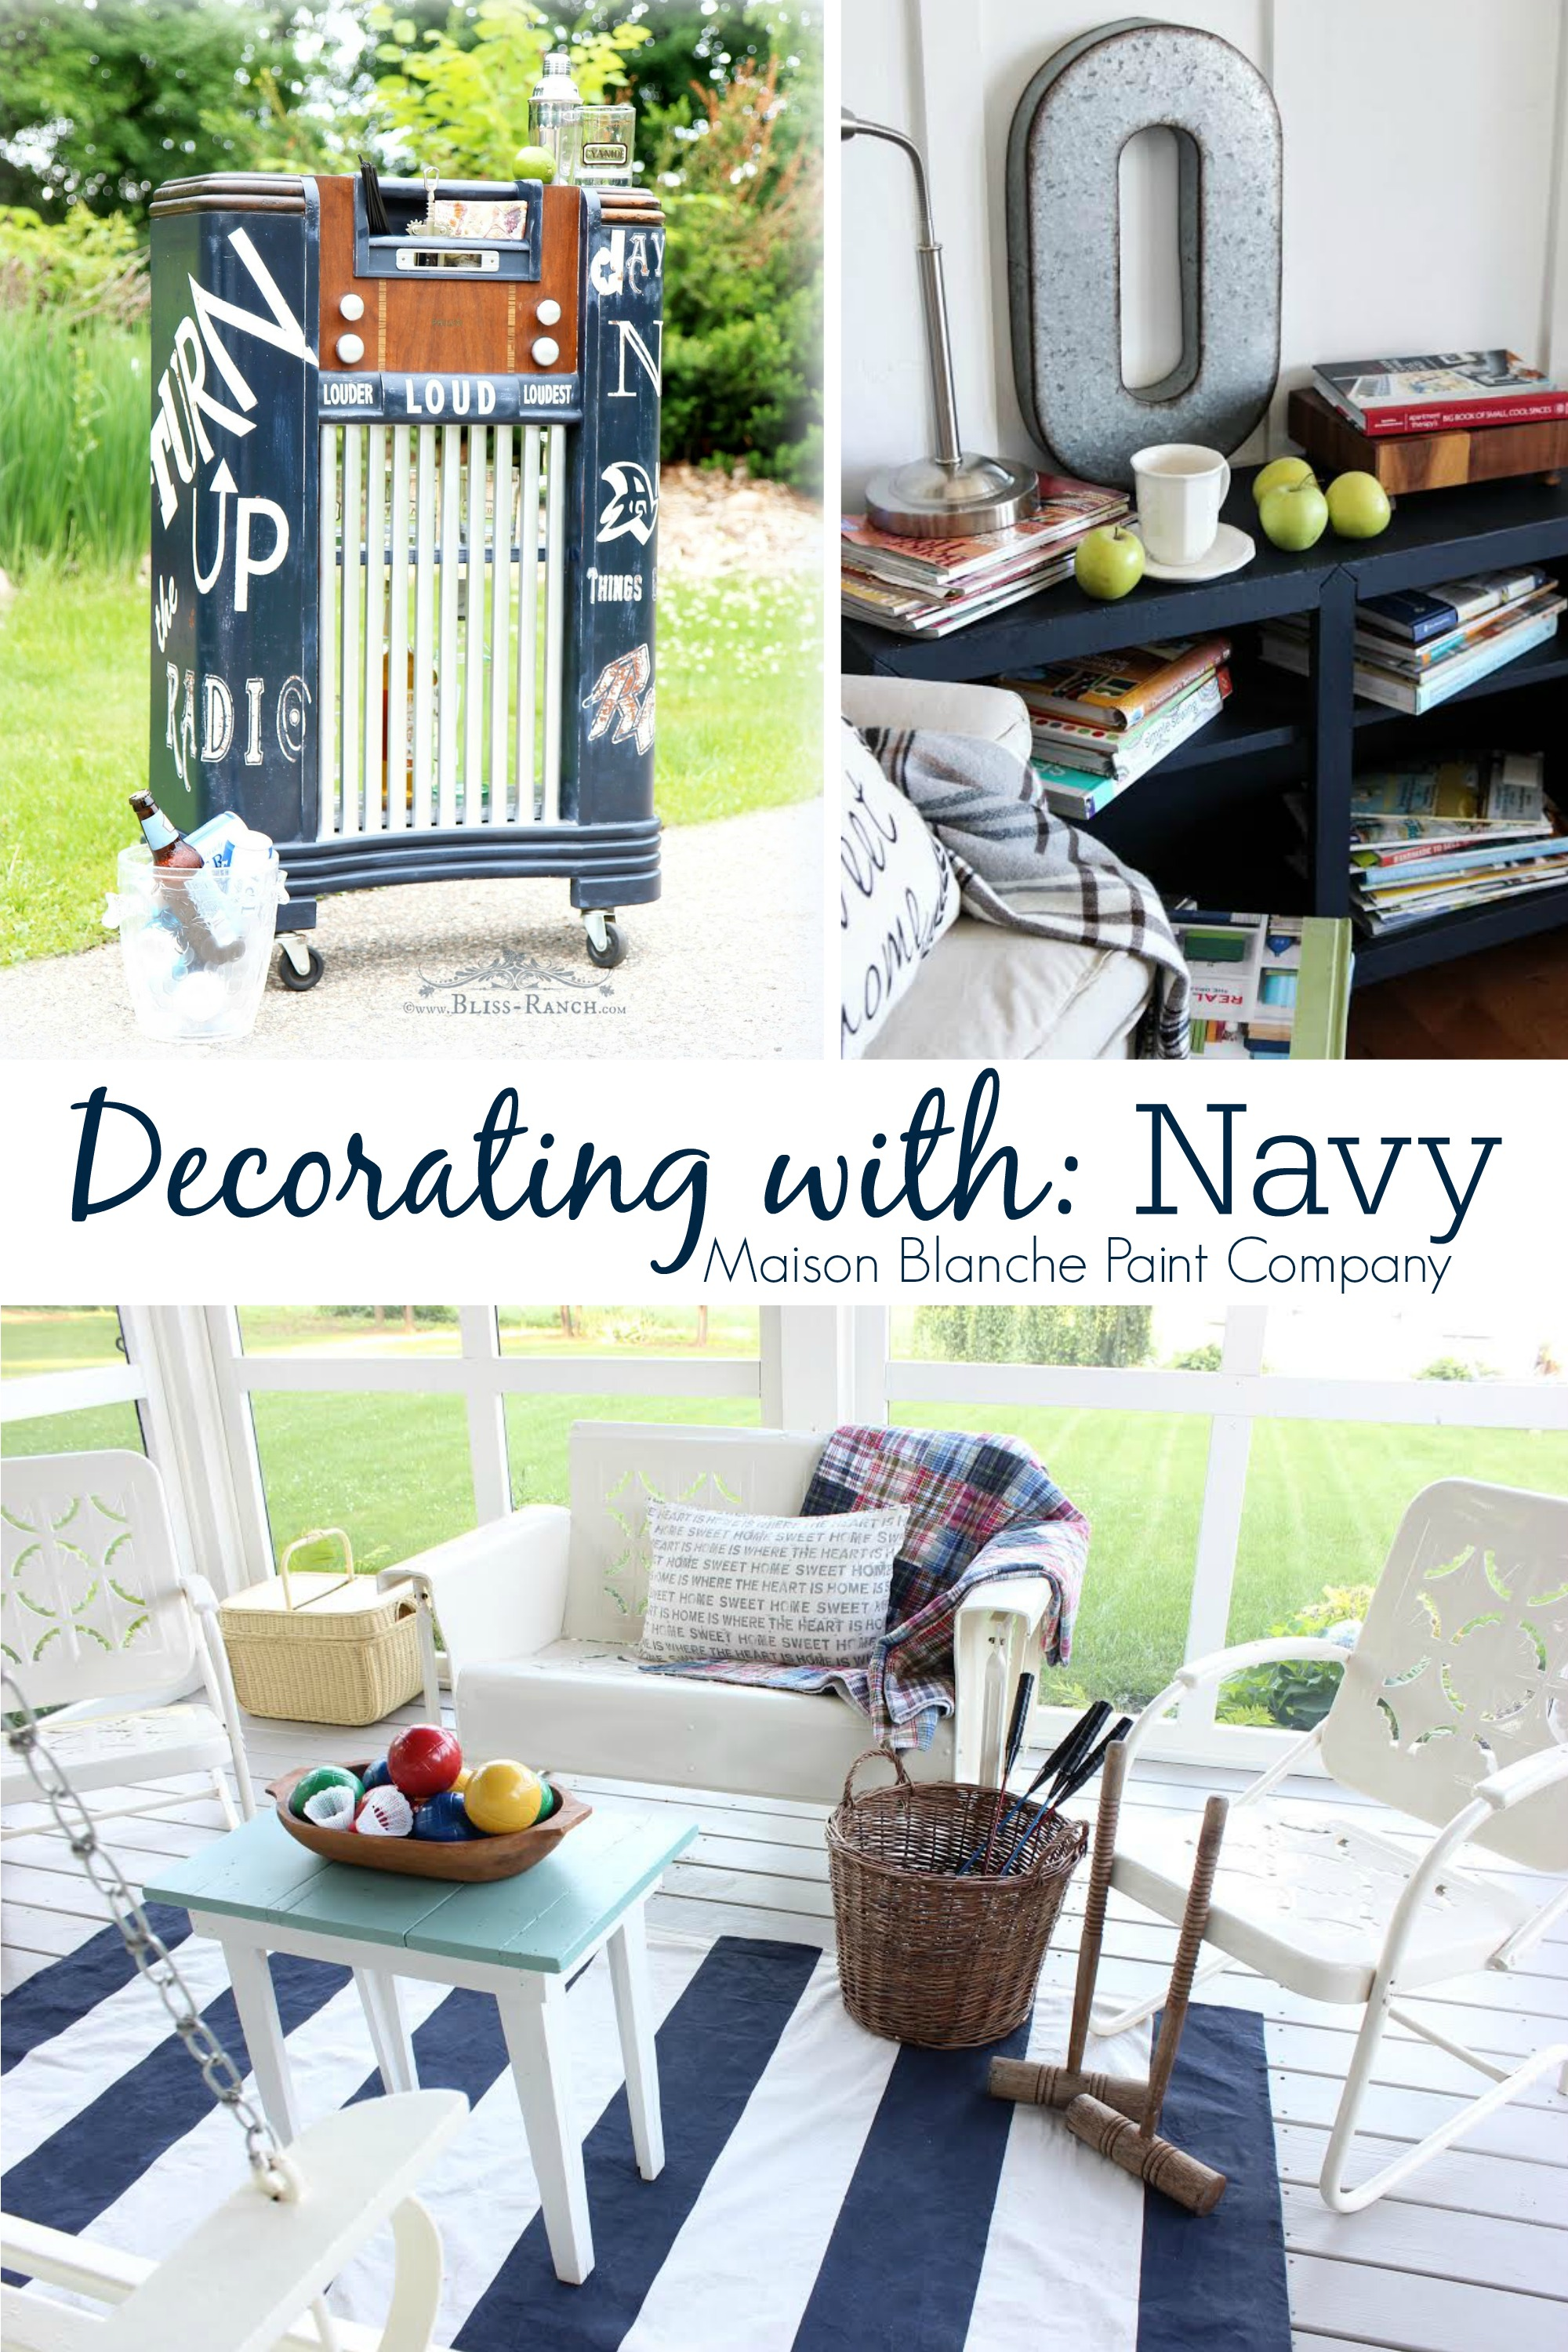 Paint Makeover Decorating Ideas With Navy - Fox Hollow Cottage